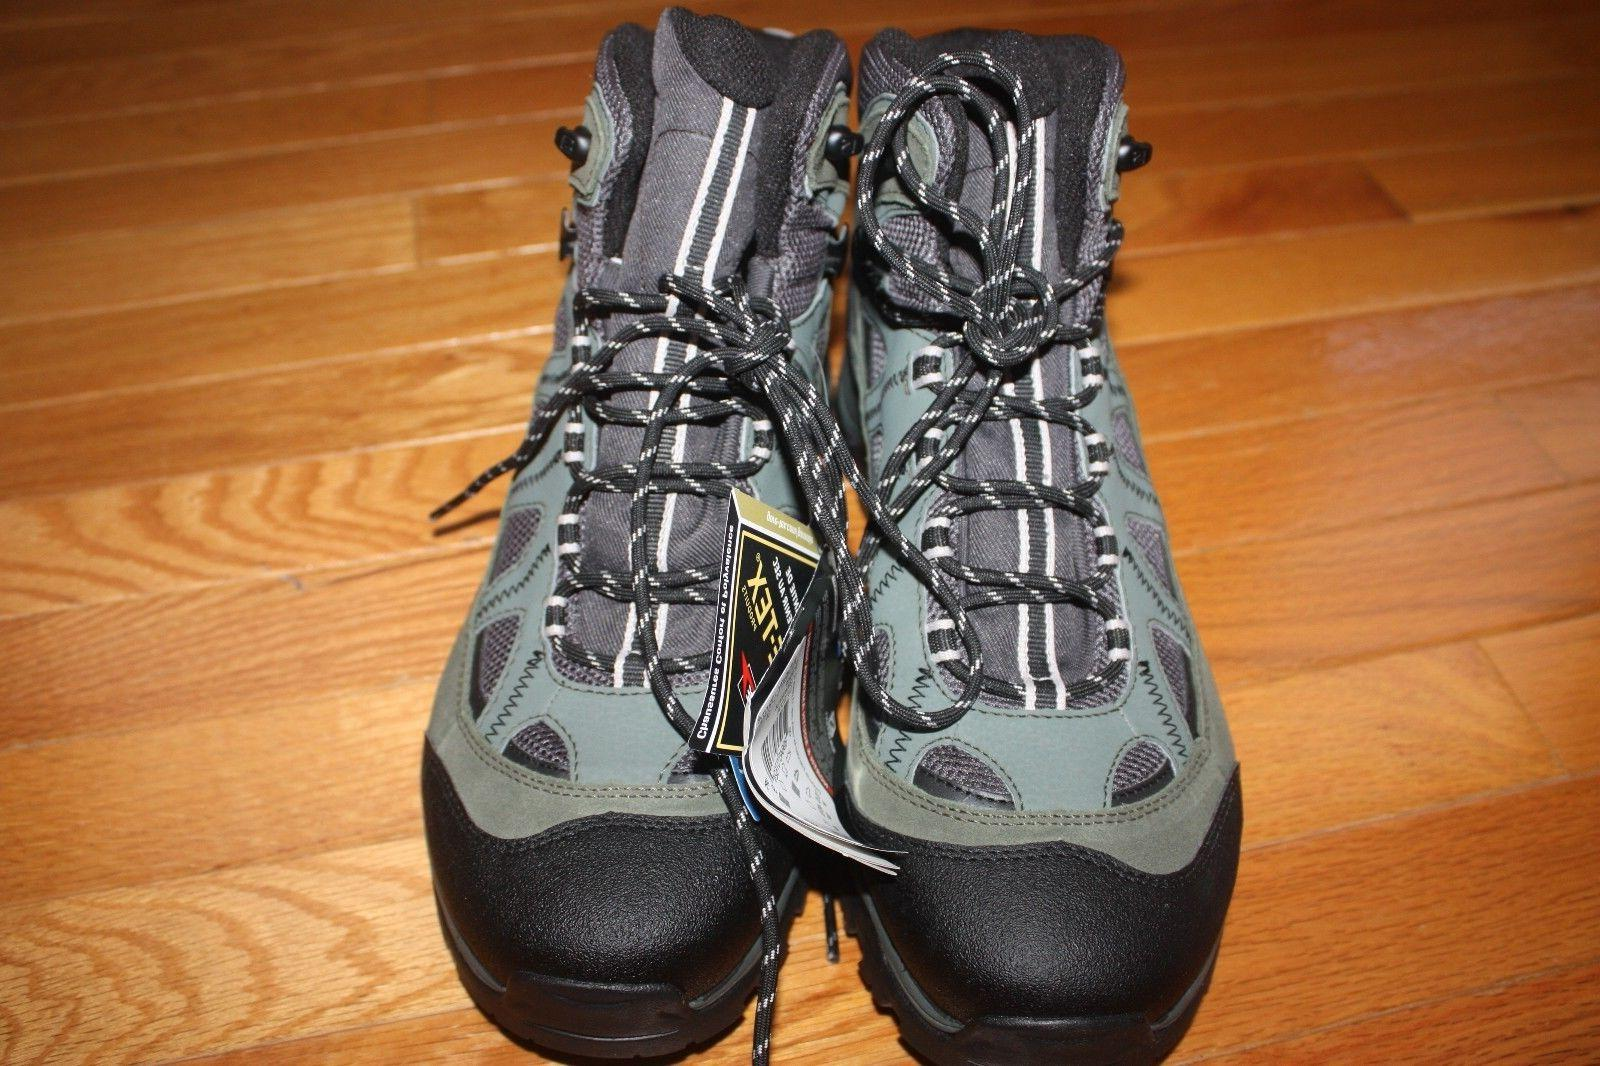 New Men's Salomon LTR Backpacking Boots US FAST